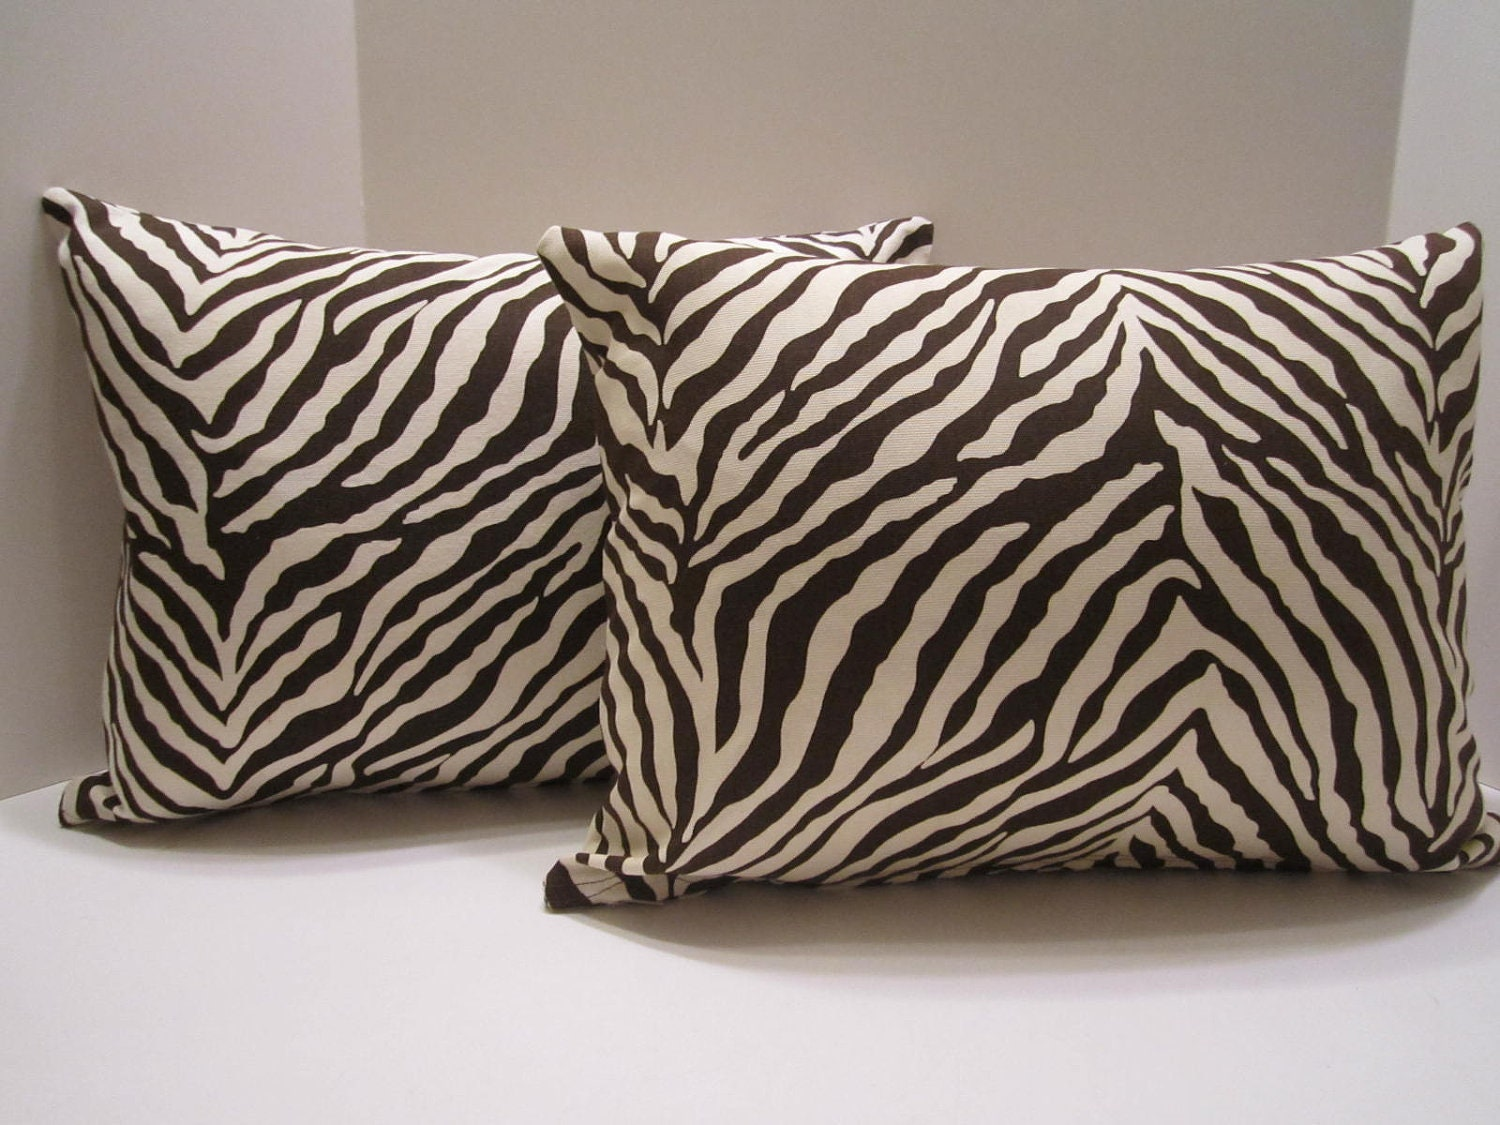 Zebra Design Lumbar Pillow Covers Brown And White Zebra